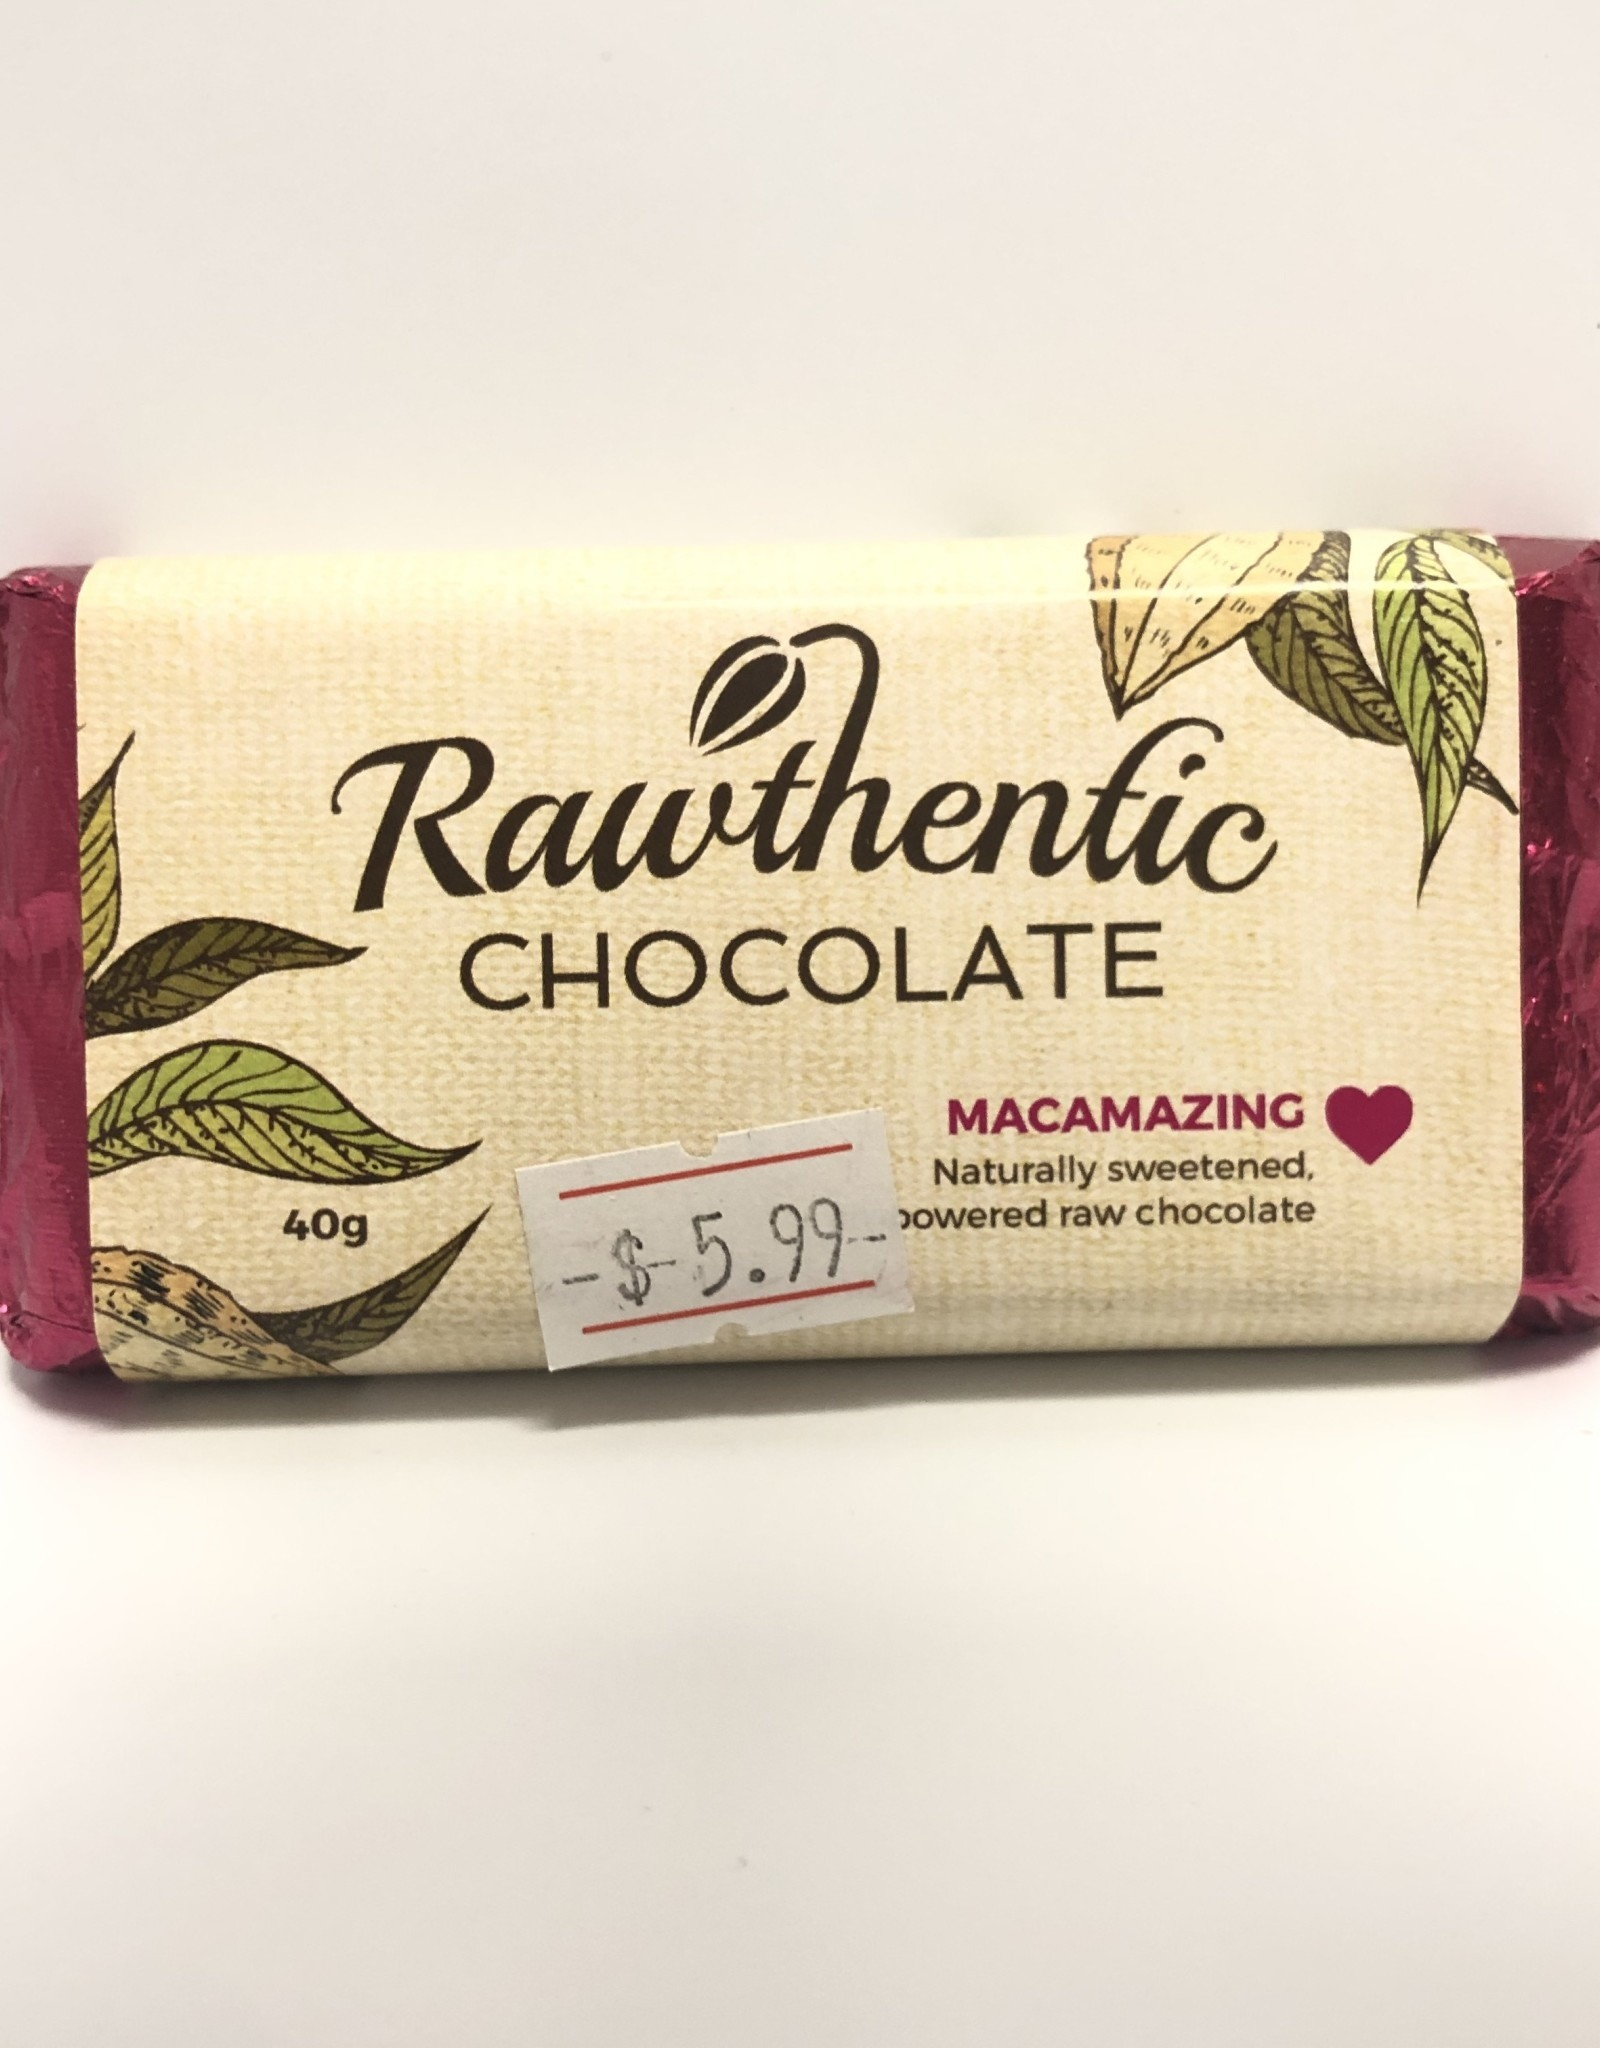 Rawthentic Chocolate Rawthentic Chocolate - Bar, Macamazing